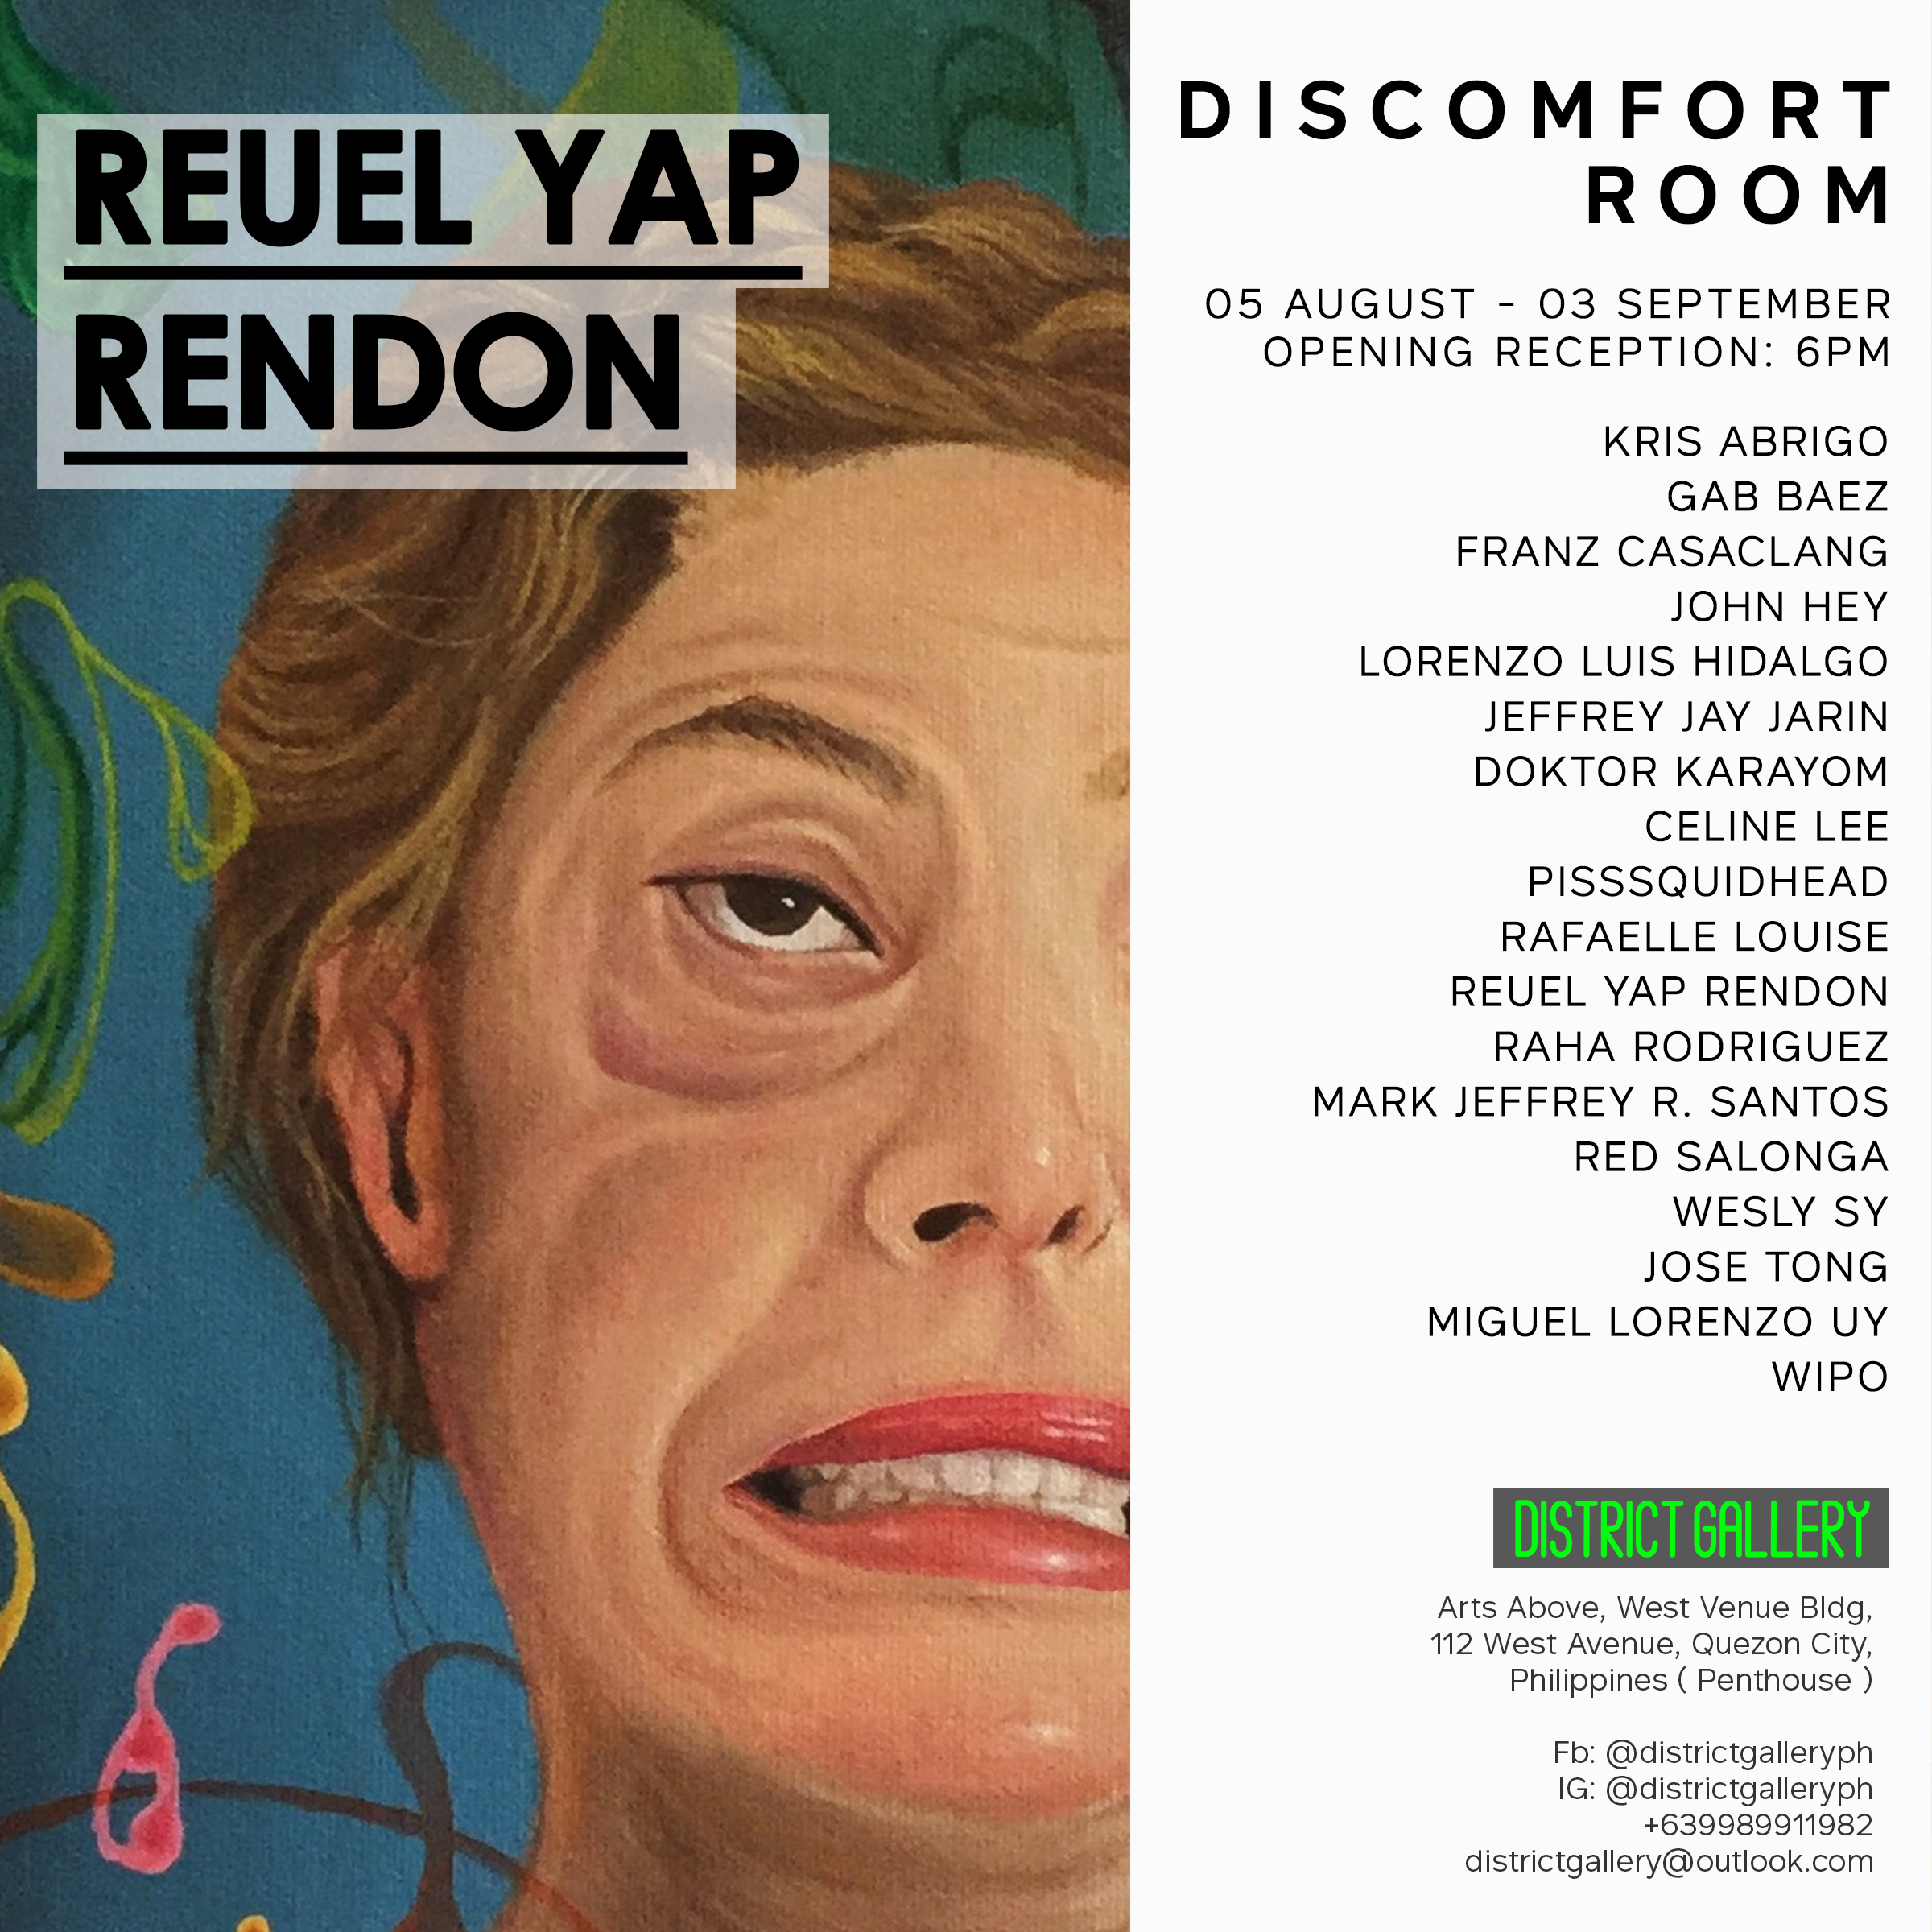 Reuel Yap Rendon